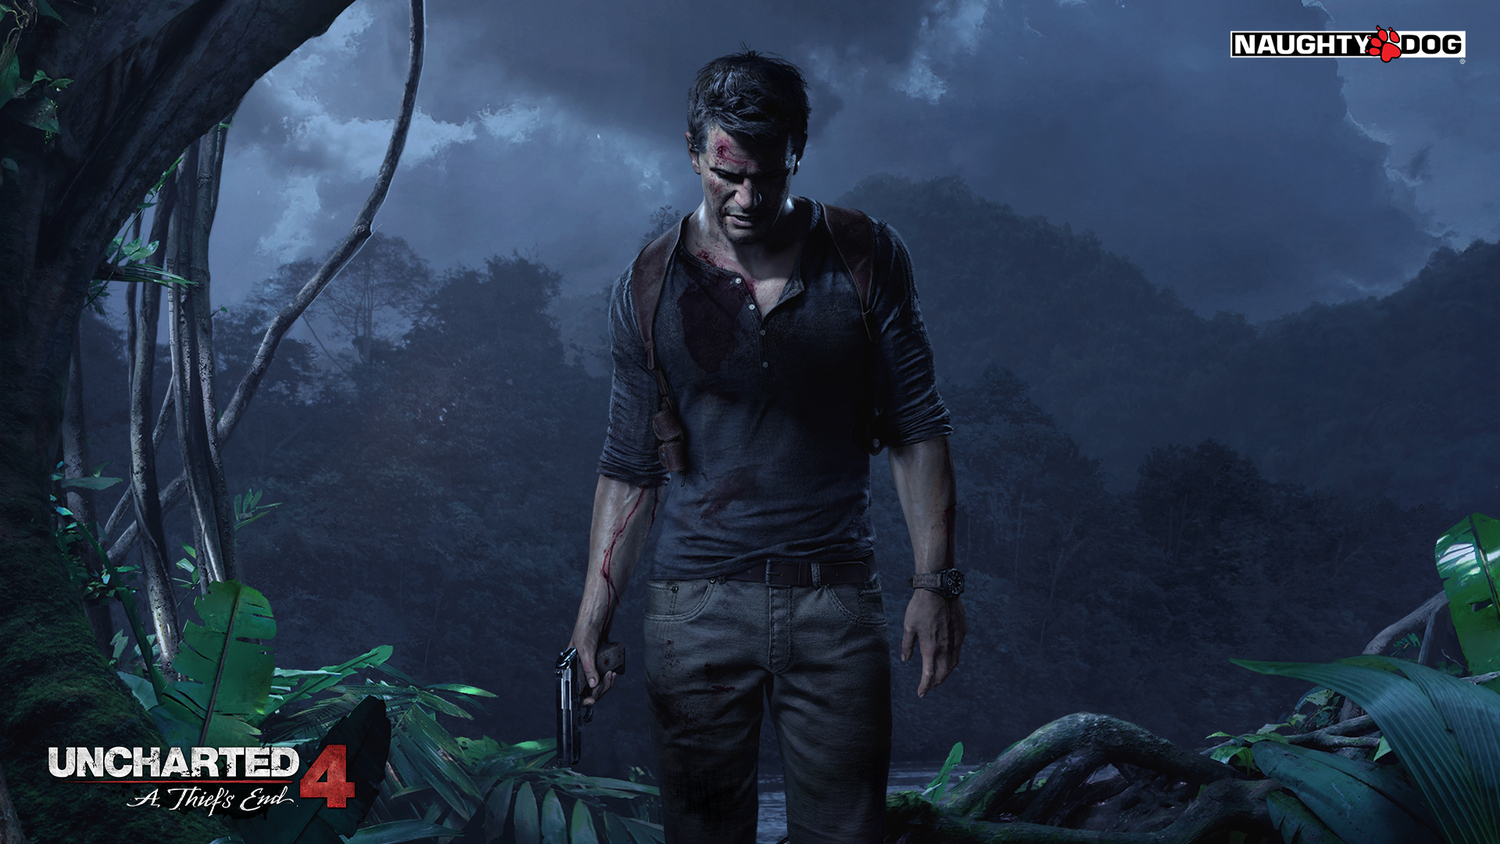 E3 Spotlight: Uncharted 4